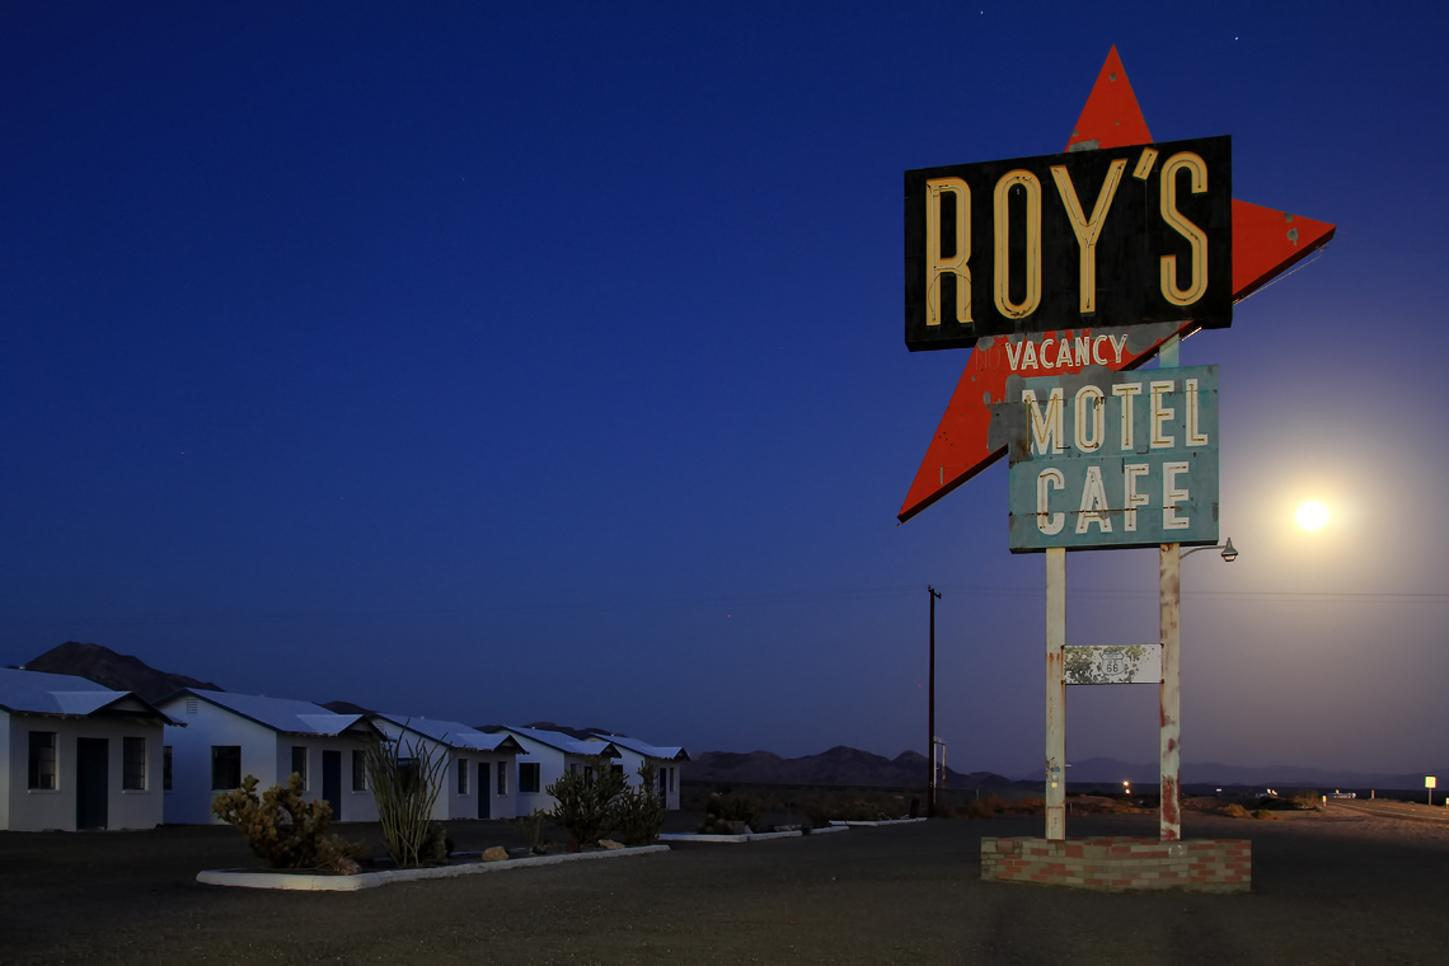 Roy's Motel and Cafe in Amboy, California, along Route 66